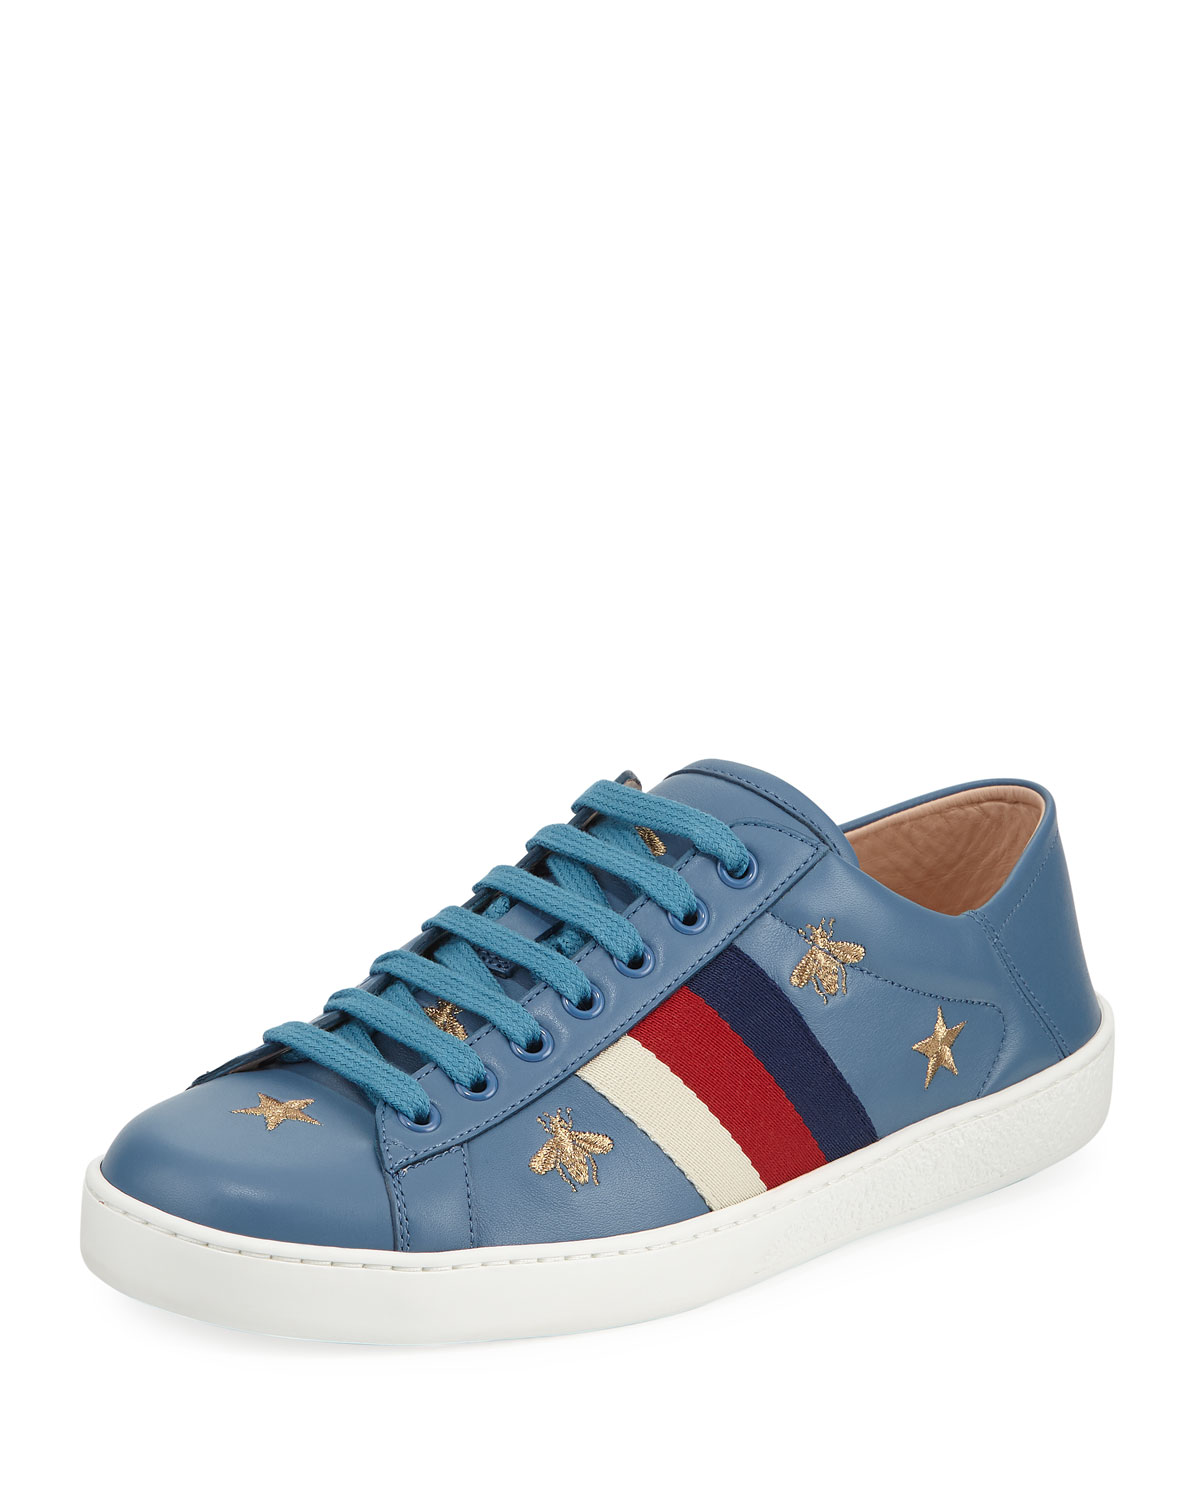 7c85a2d2271 Gucci Ace Sneaker with Bees and Stars